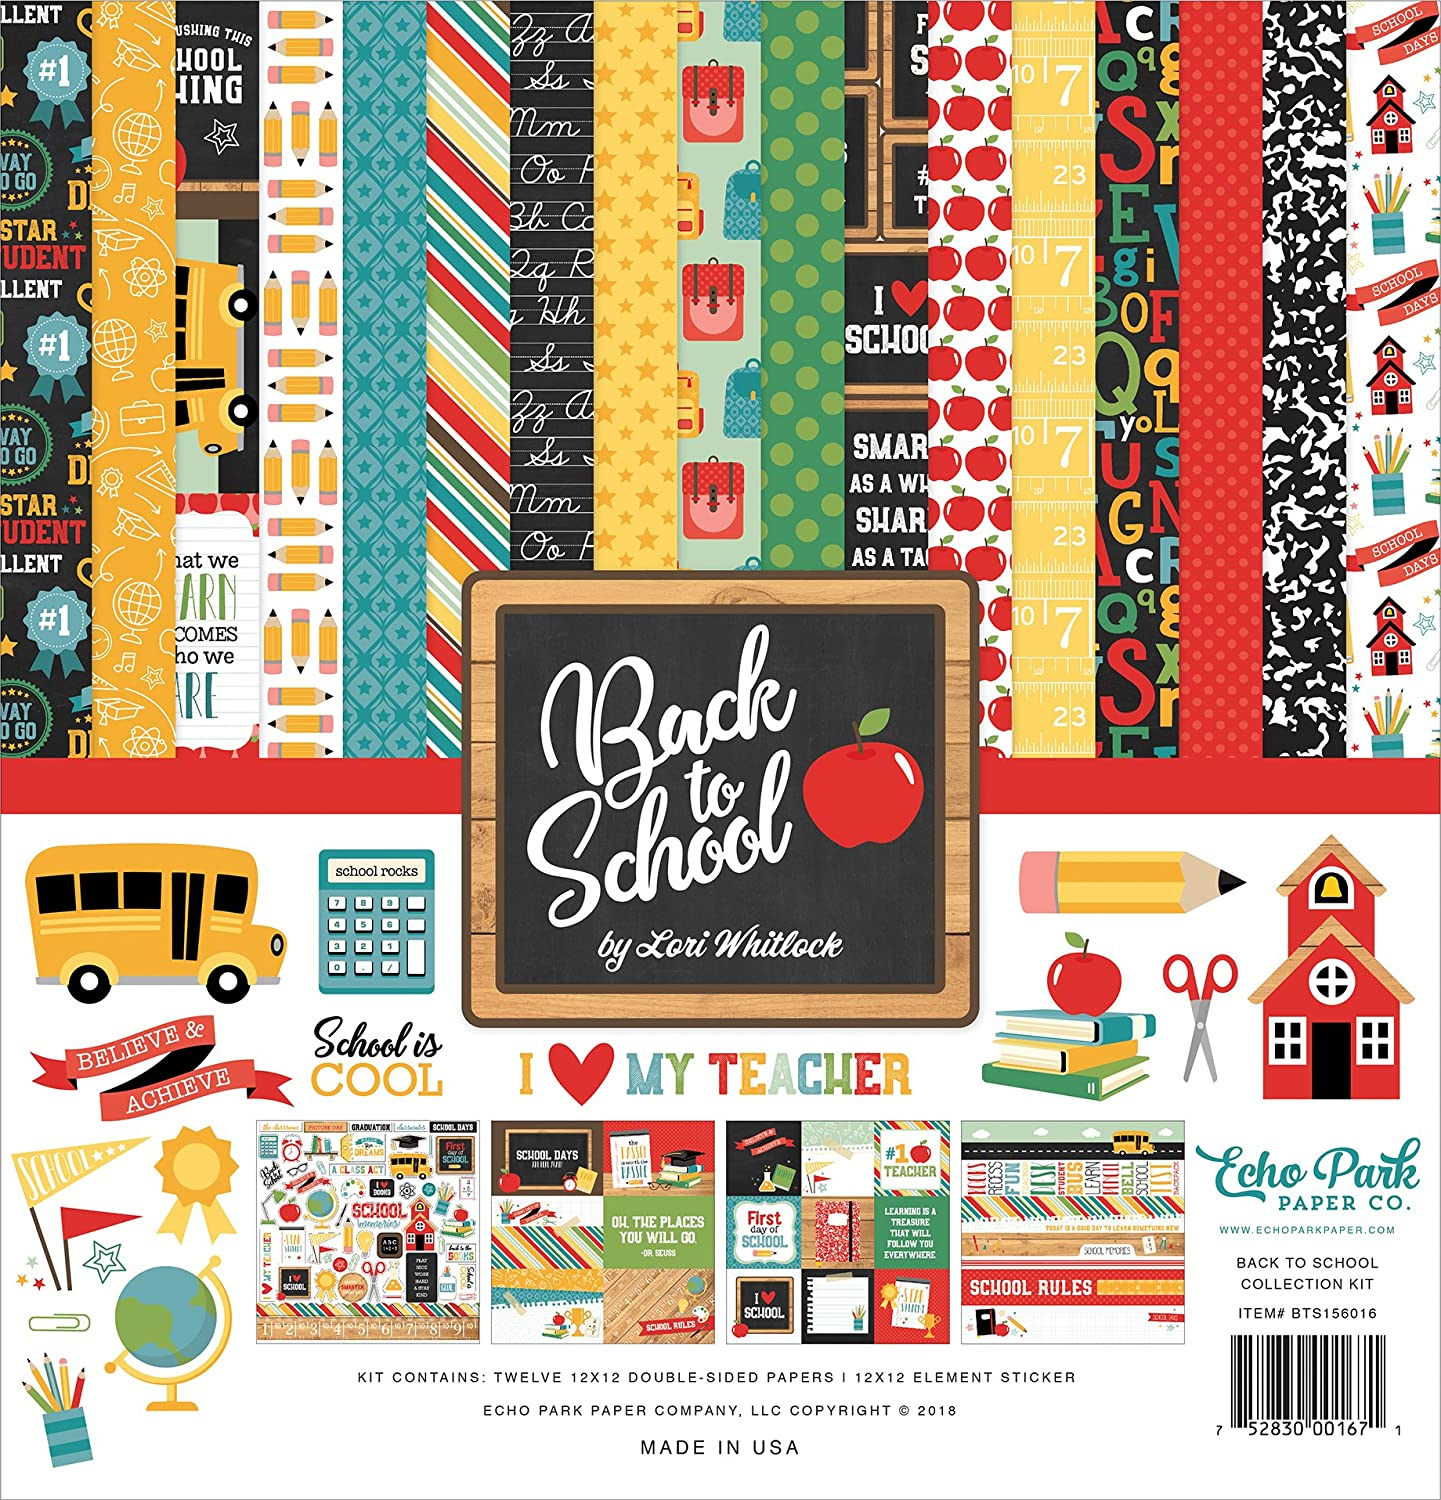 Echo Park Paper Company 1 Back to School Collection Kit Paper, Blue, Black, Red, Green, Yellow